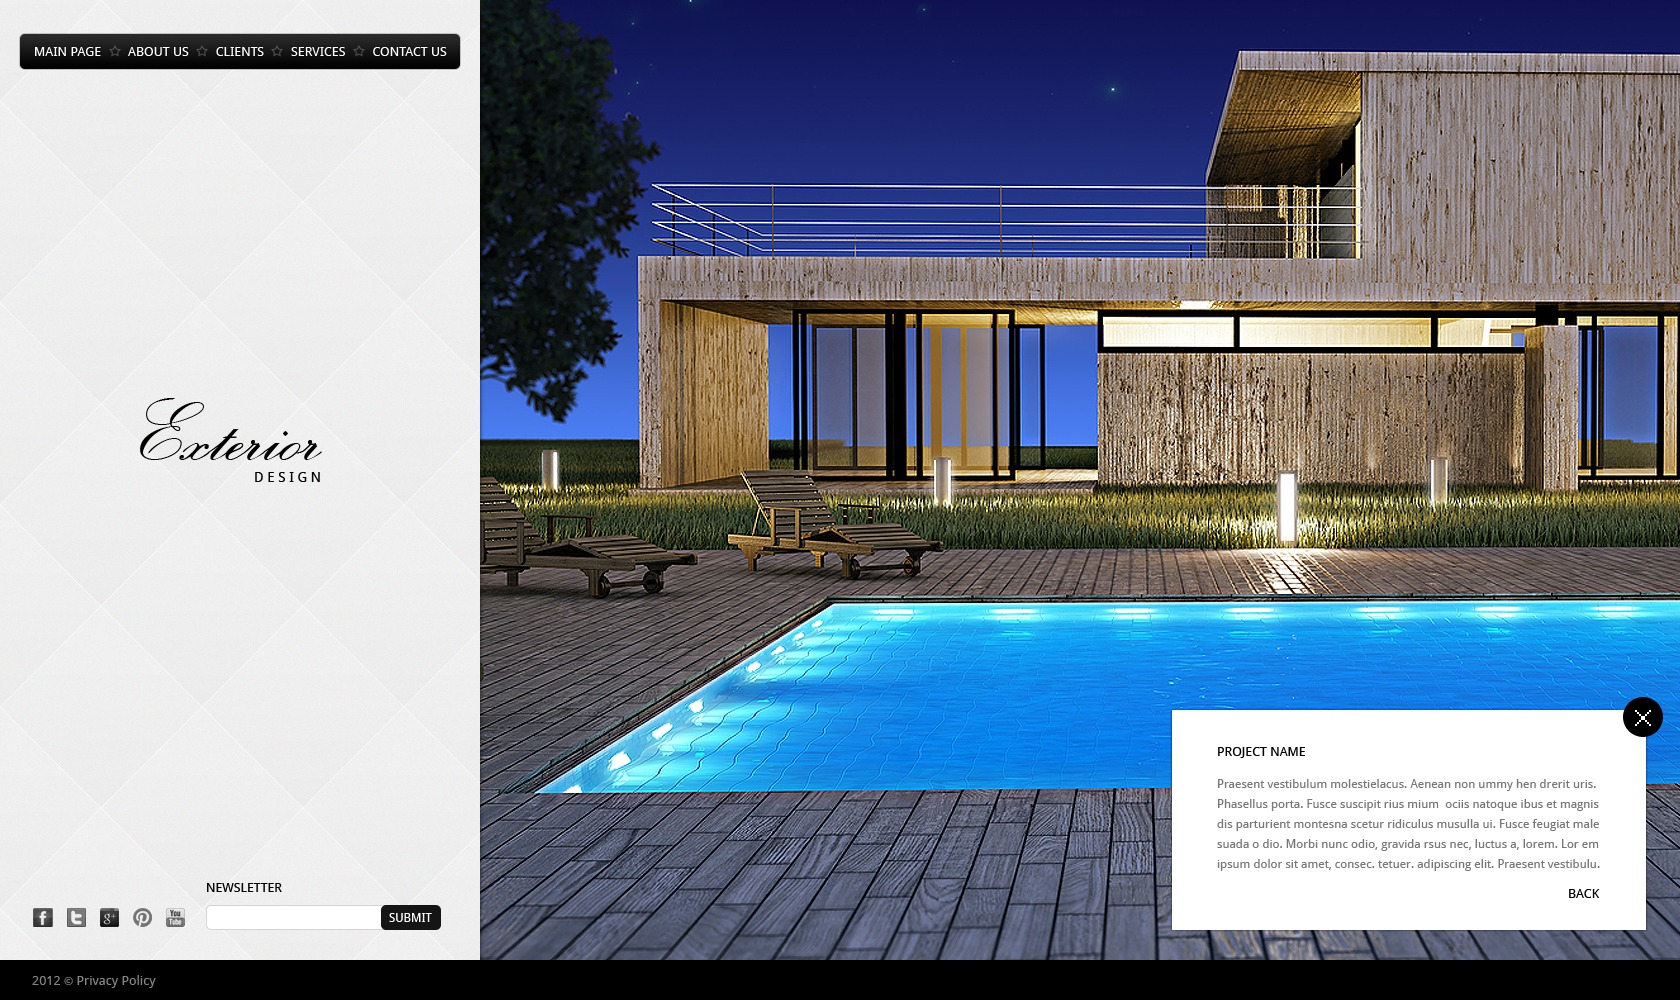 Exterior design website template 40030 for Exterior design website templates